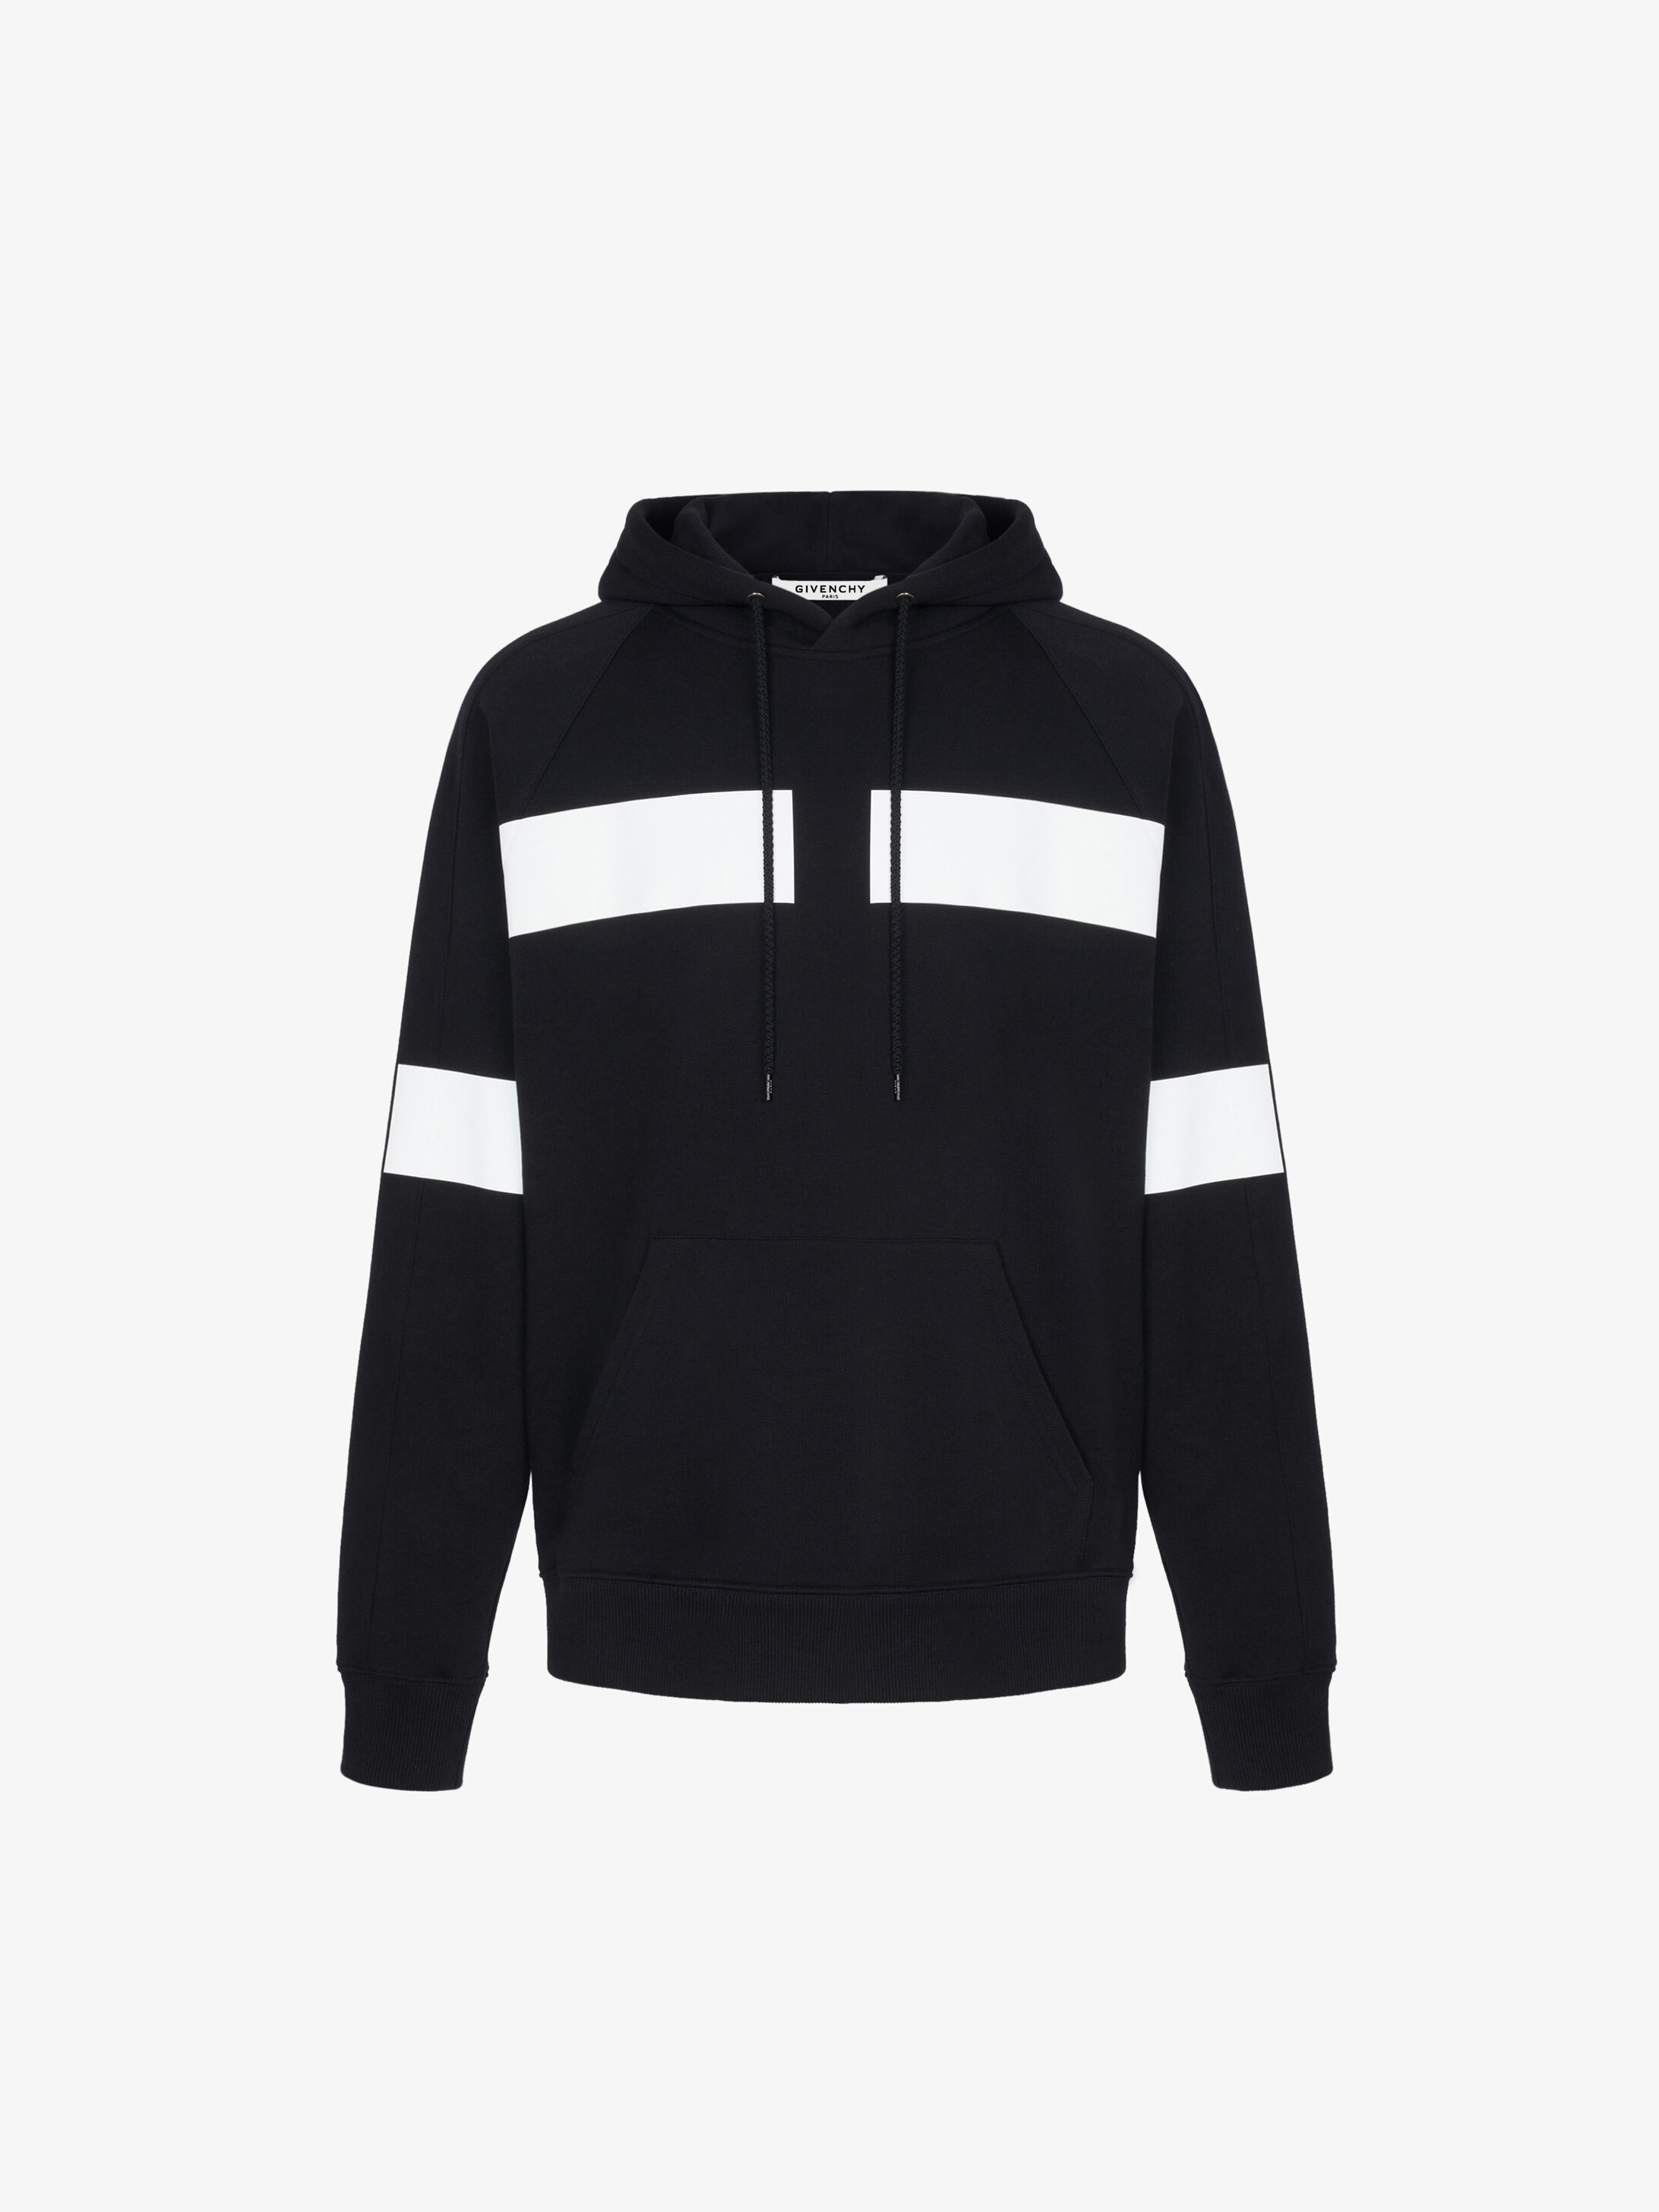 11fbbf2c Men's Sweatshirts collection by Givenchy. | GIVENCHY Paris